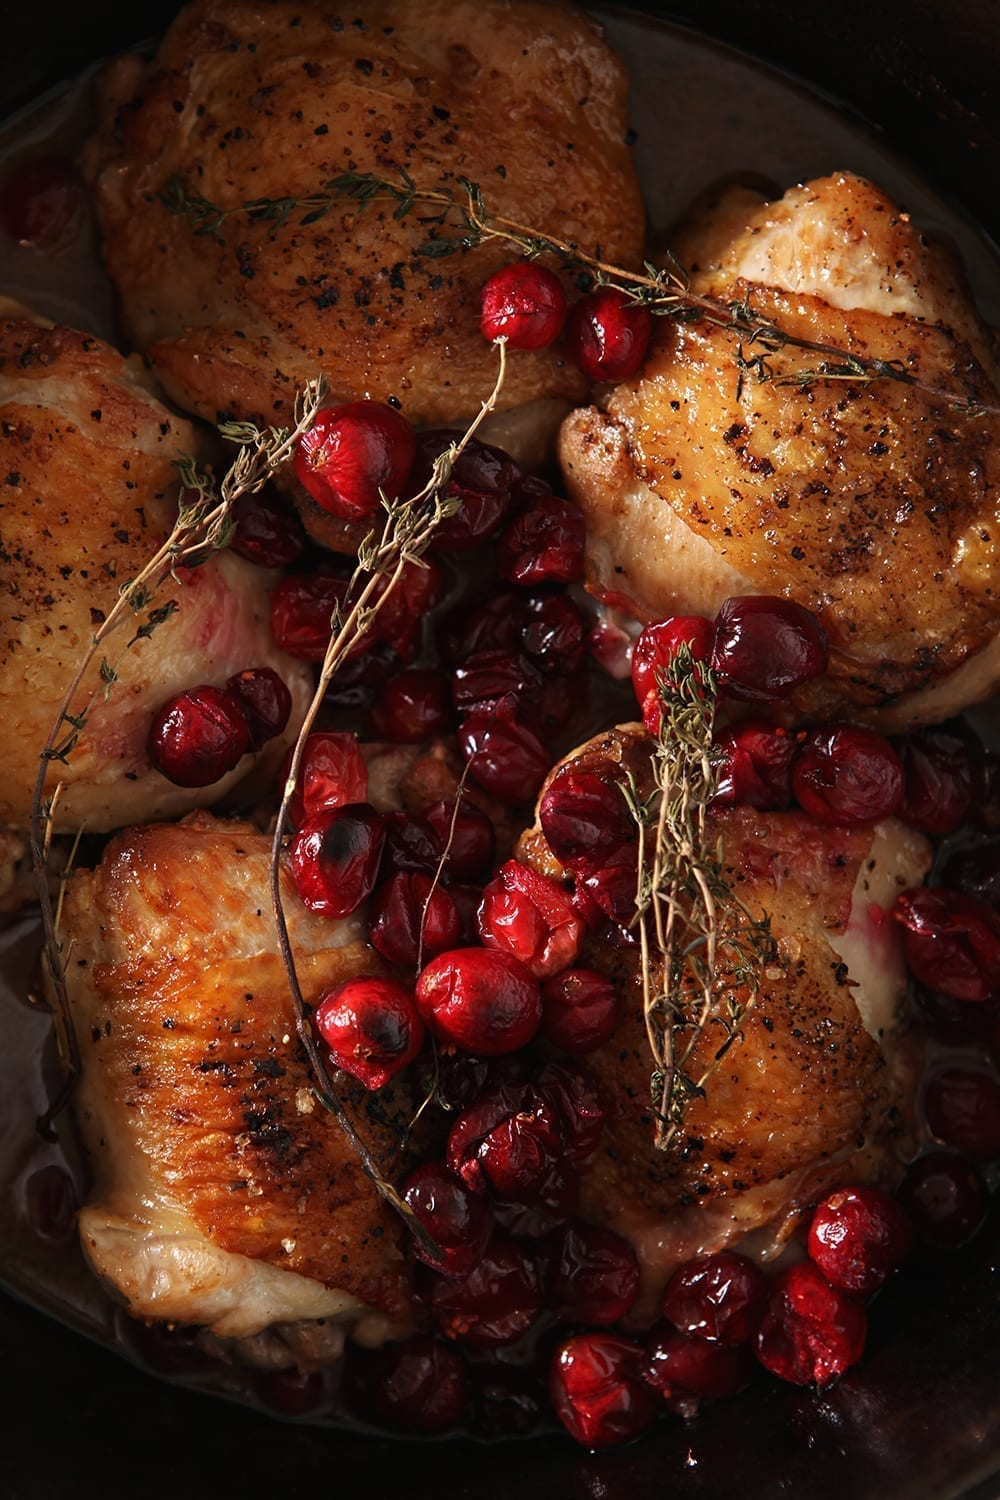 Close up of the Cranberry Chicken Thighs in the skillet, after baking